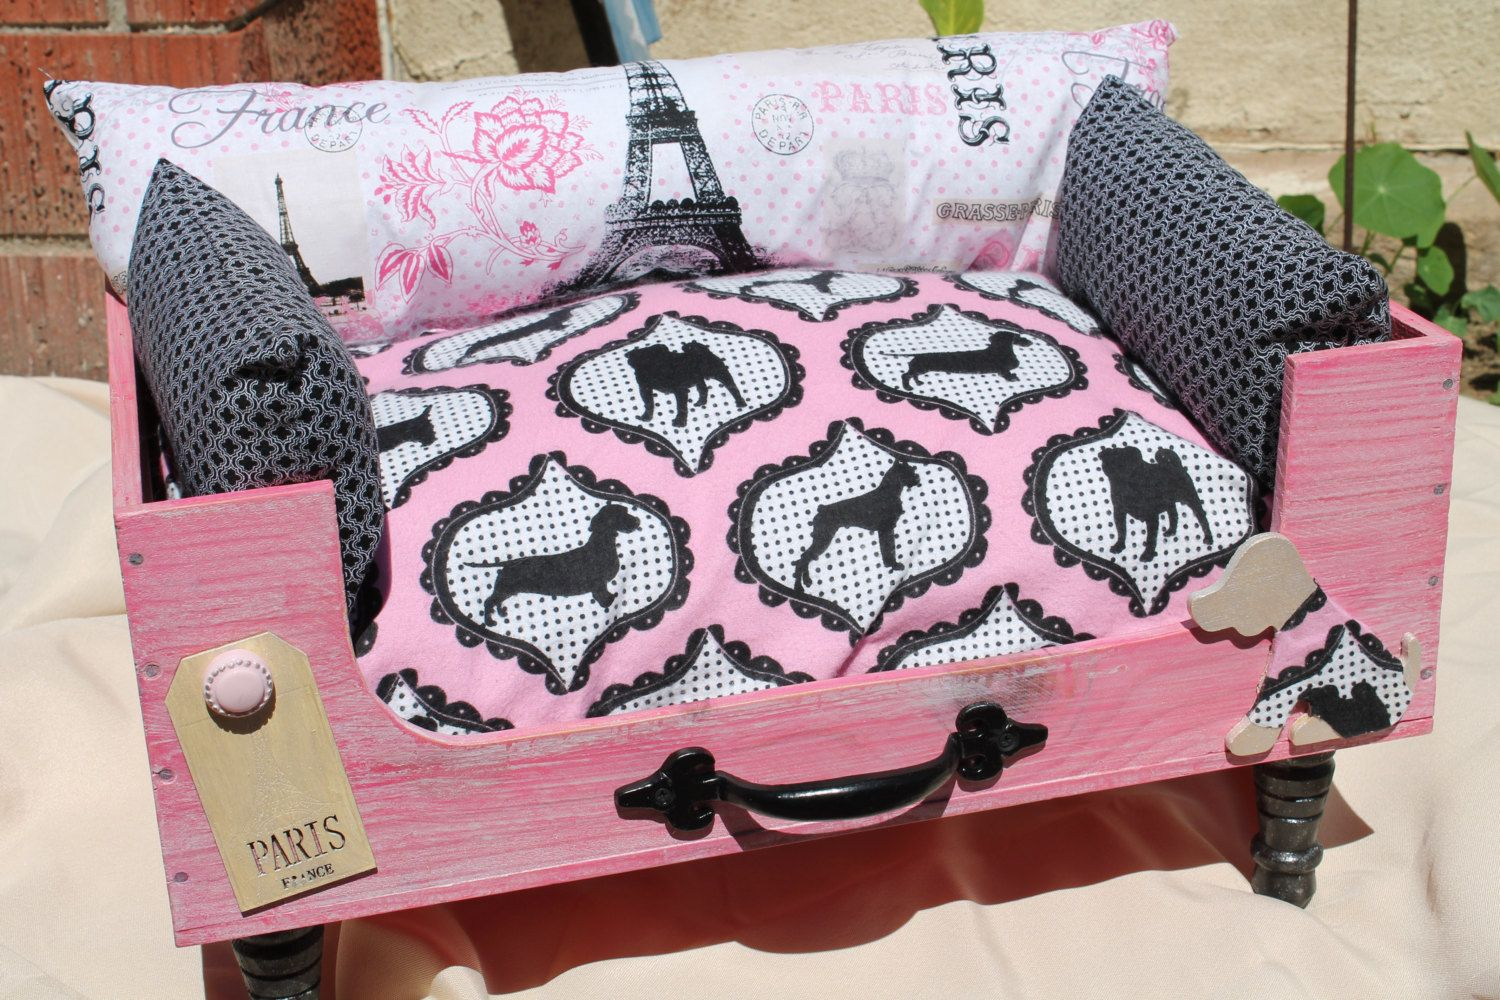 Paris Pooch Themed Dog Bed for smaller dogs by KashmereKittens on Etsy